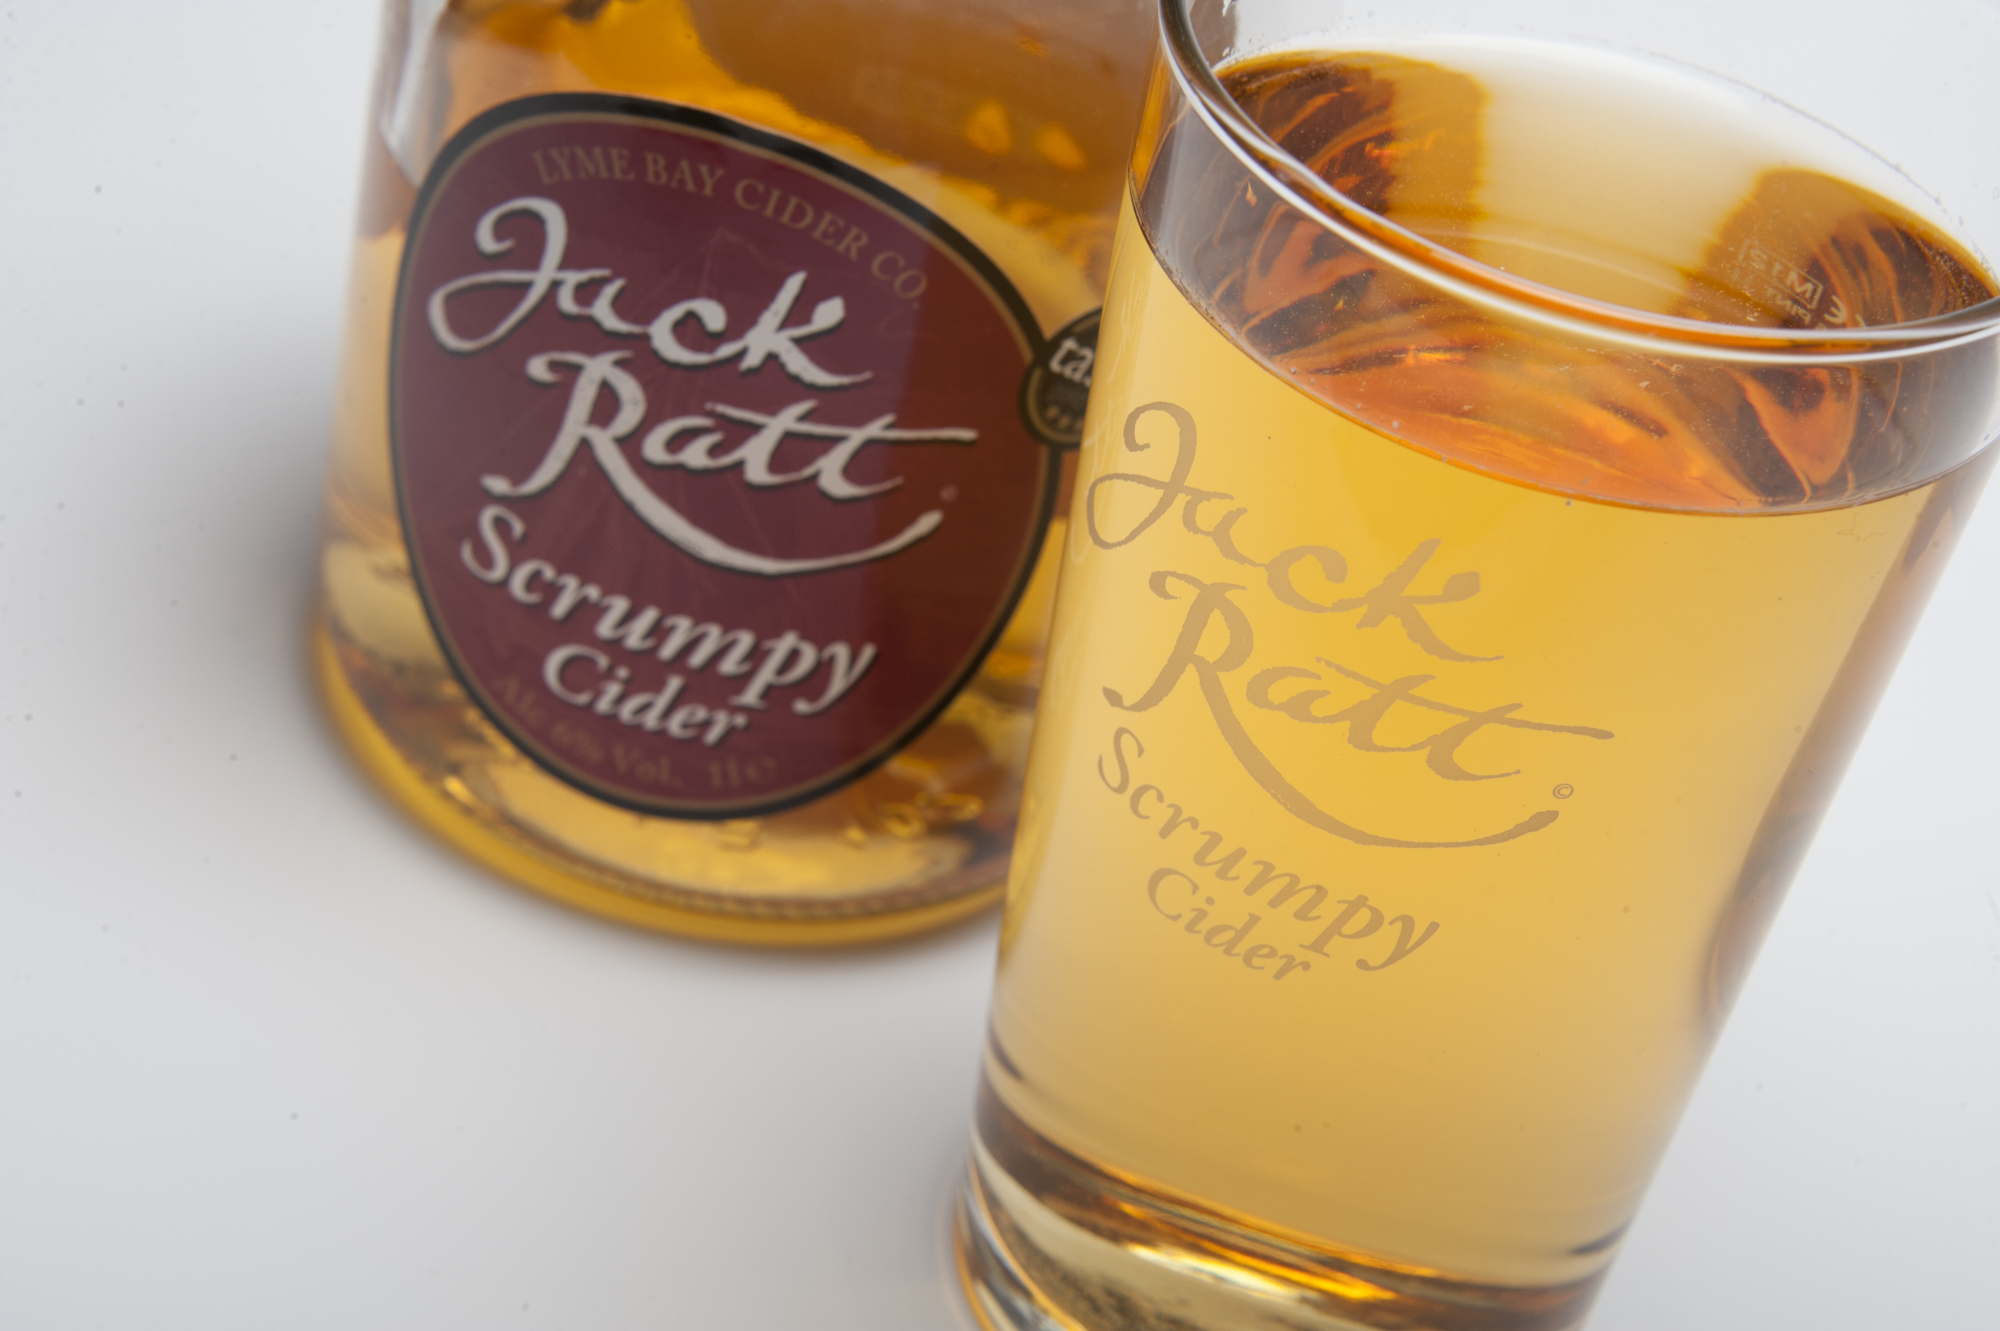 Jack Ratt Cider Product Photography